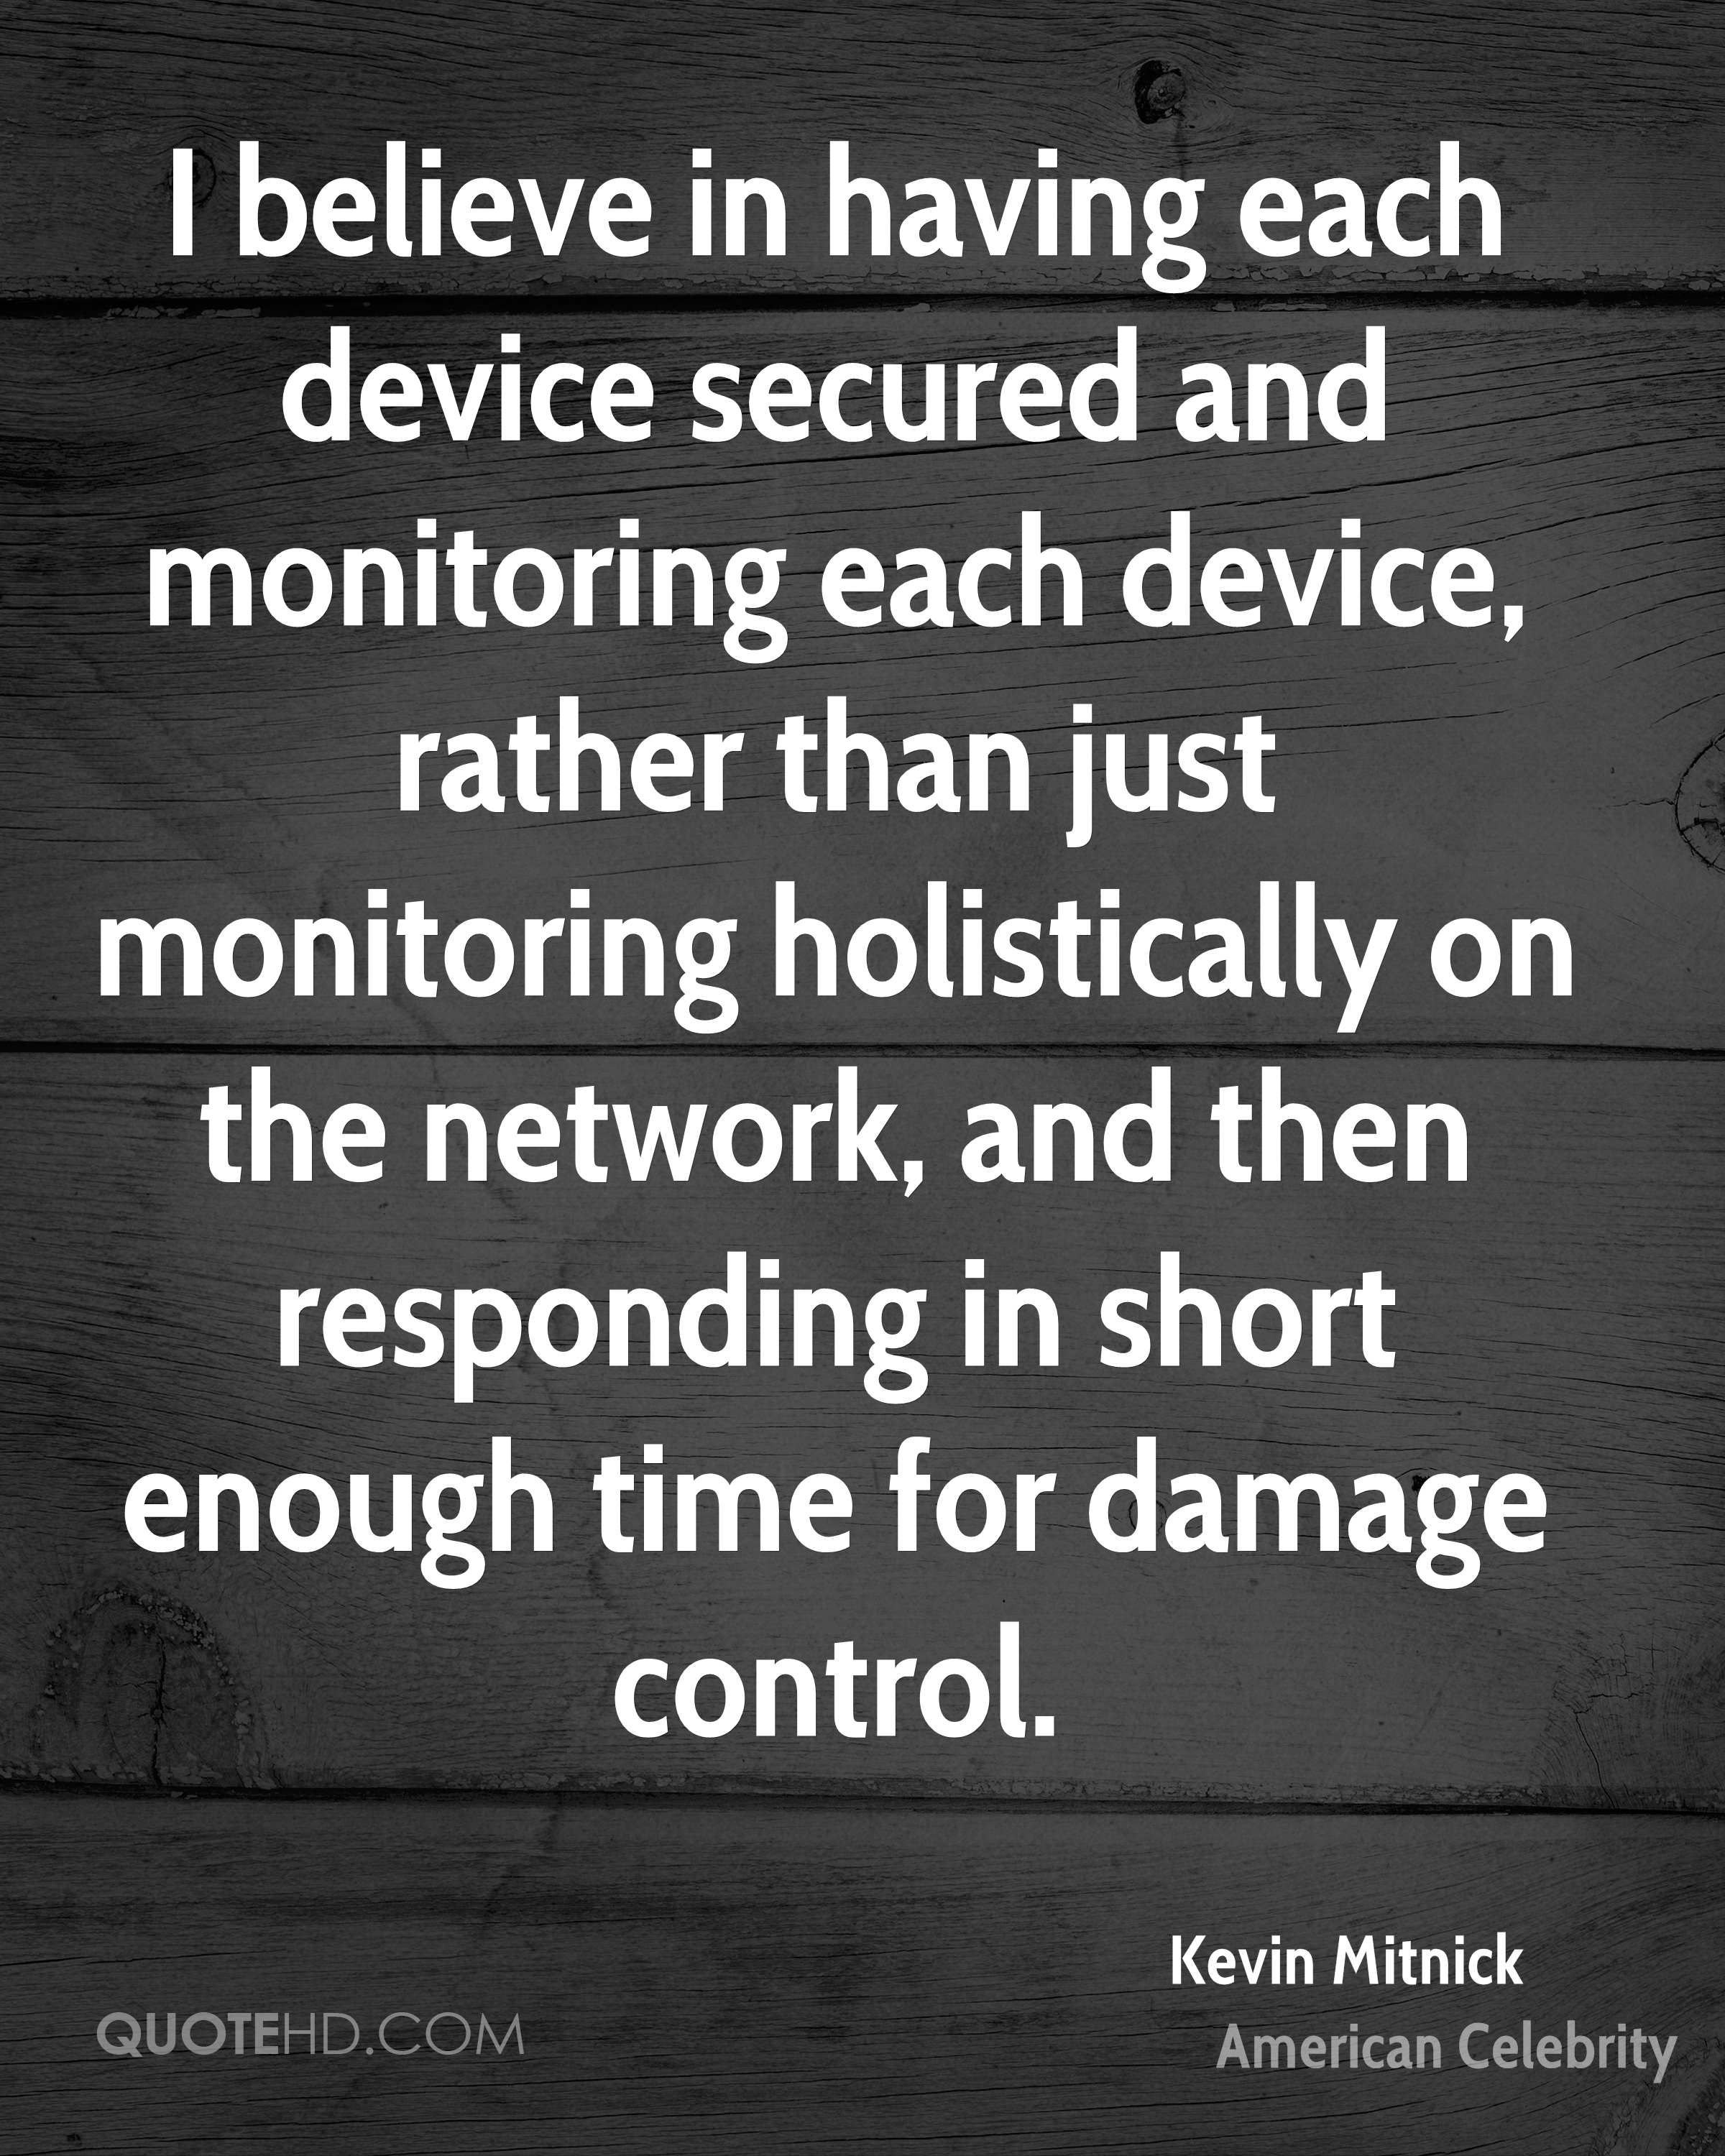 I believe in having each device secured and monitoring each device, rather than just monitoring holistically on the network, and then responding in short enough time for damage control.